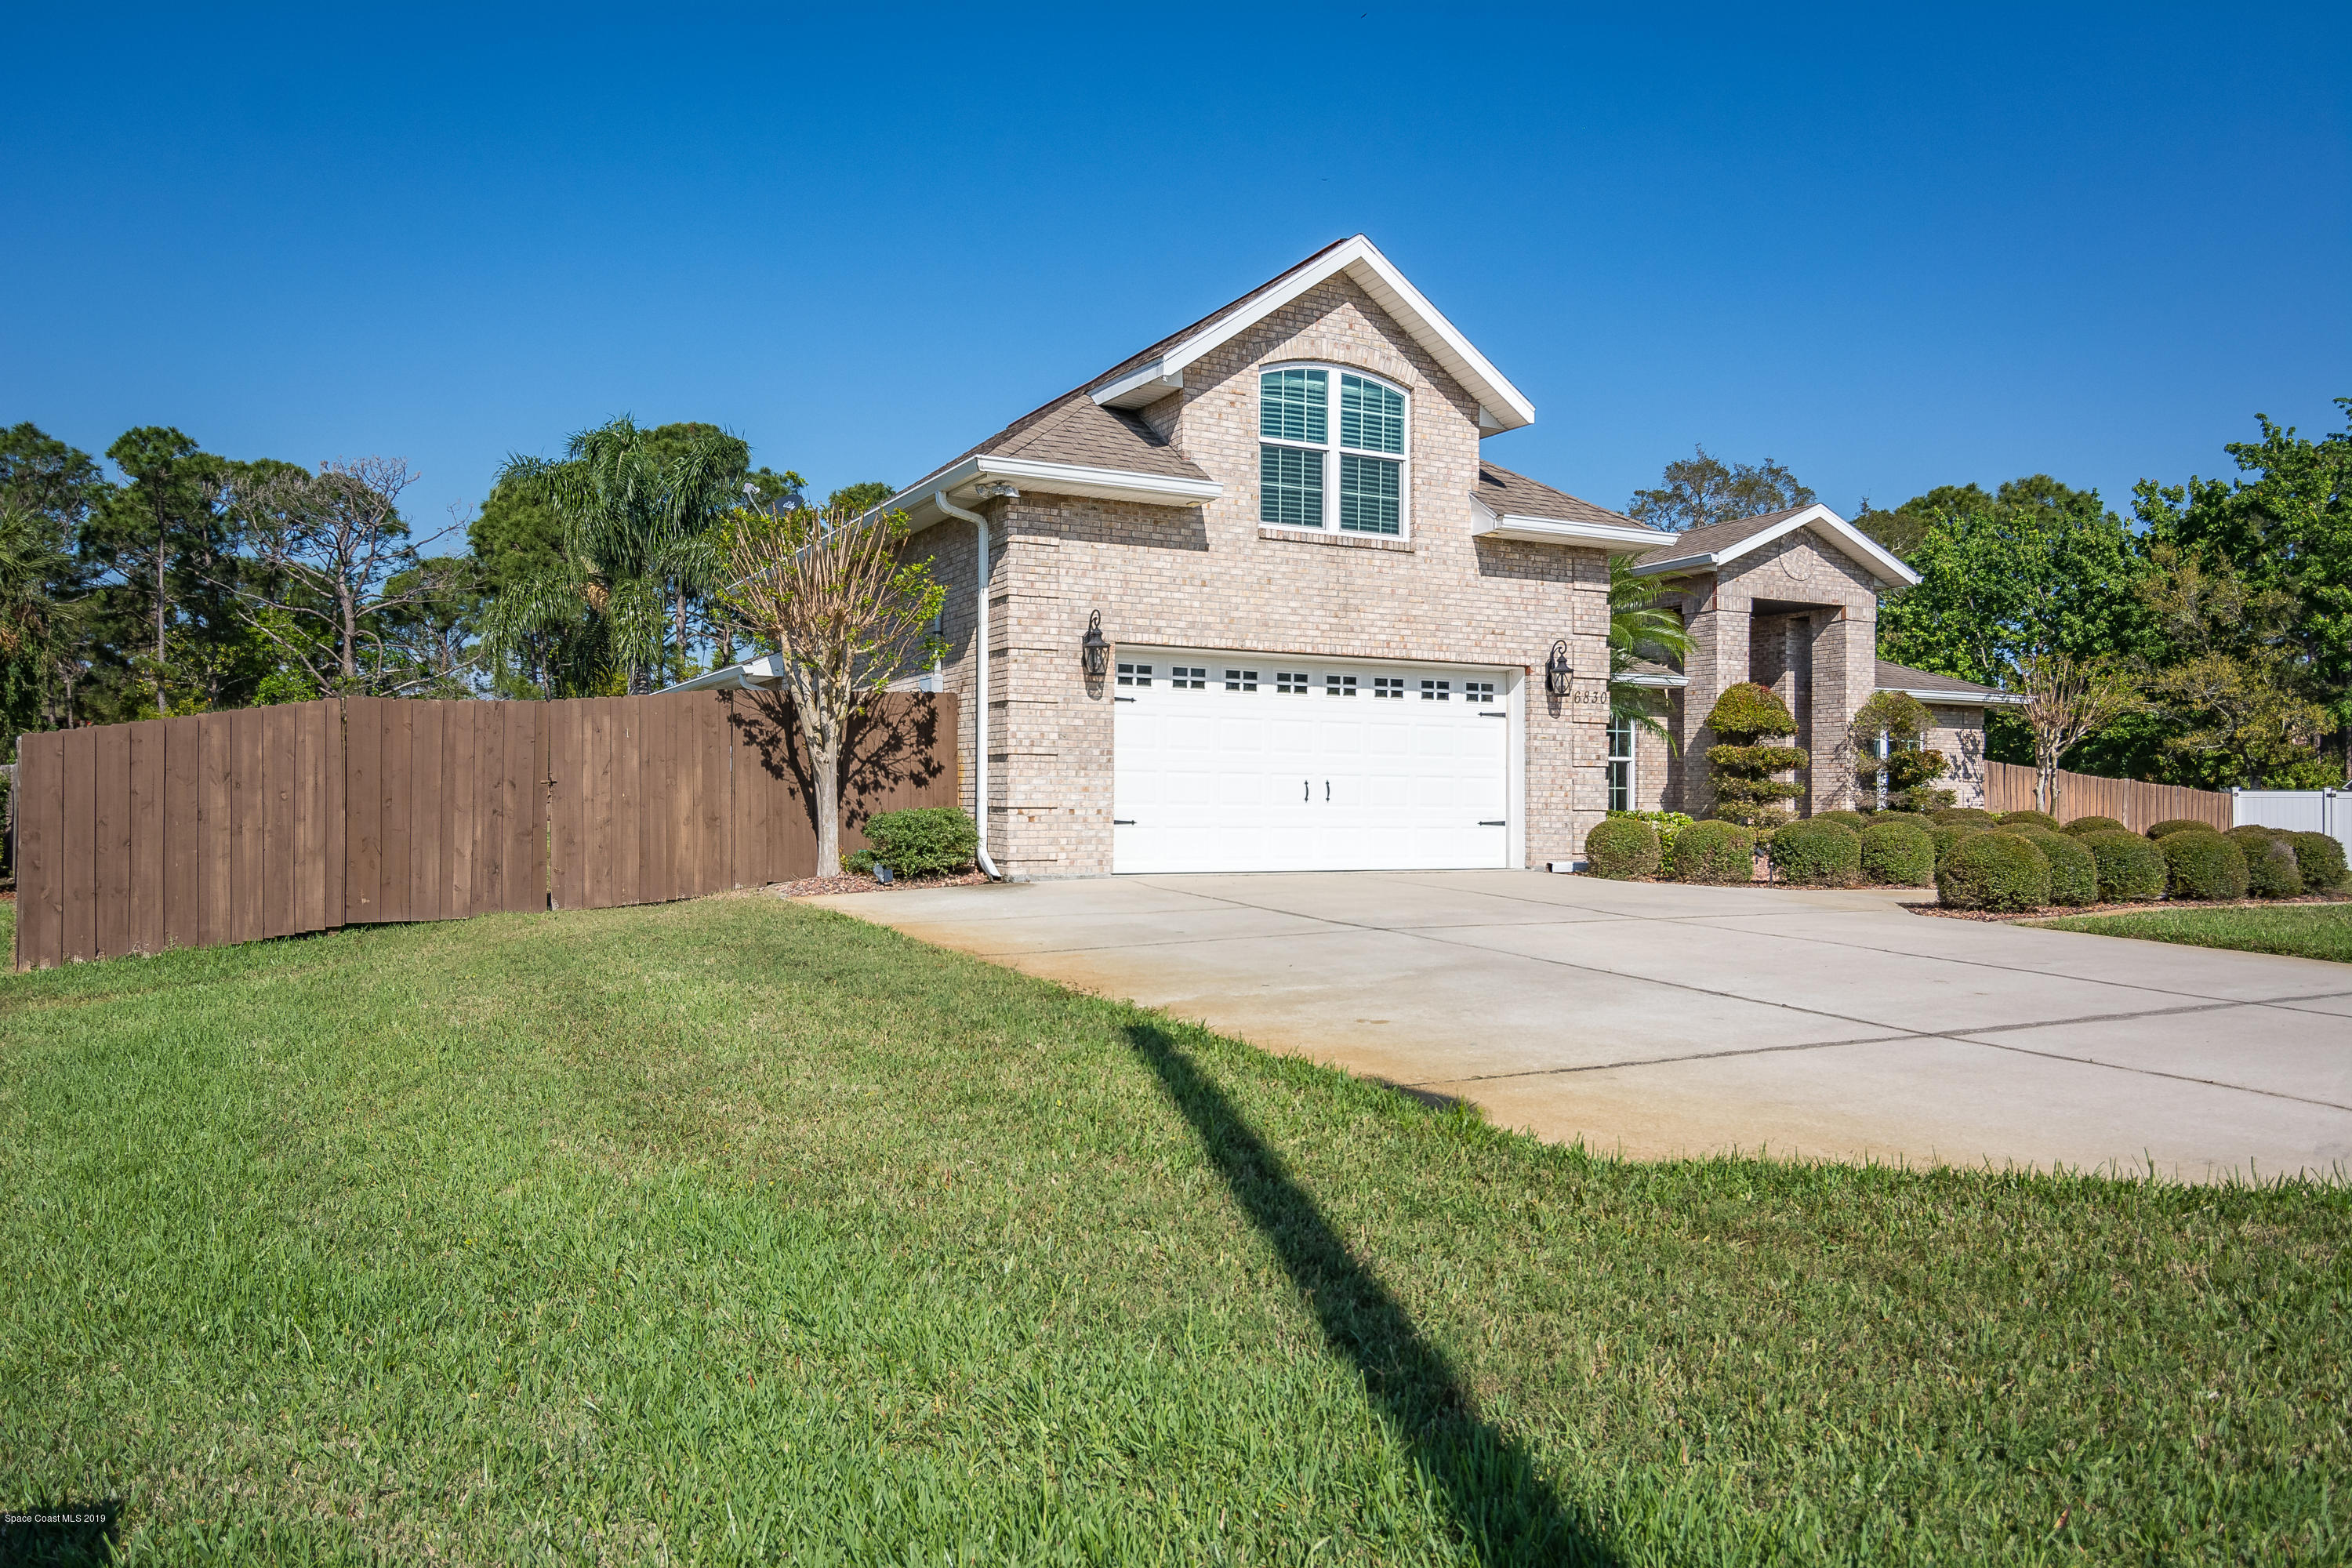 Single Family Home for Rent at 6830 Hundred Acre 6830 Hundred Acre Cocoa, Florida 32927 United States